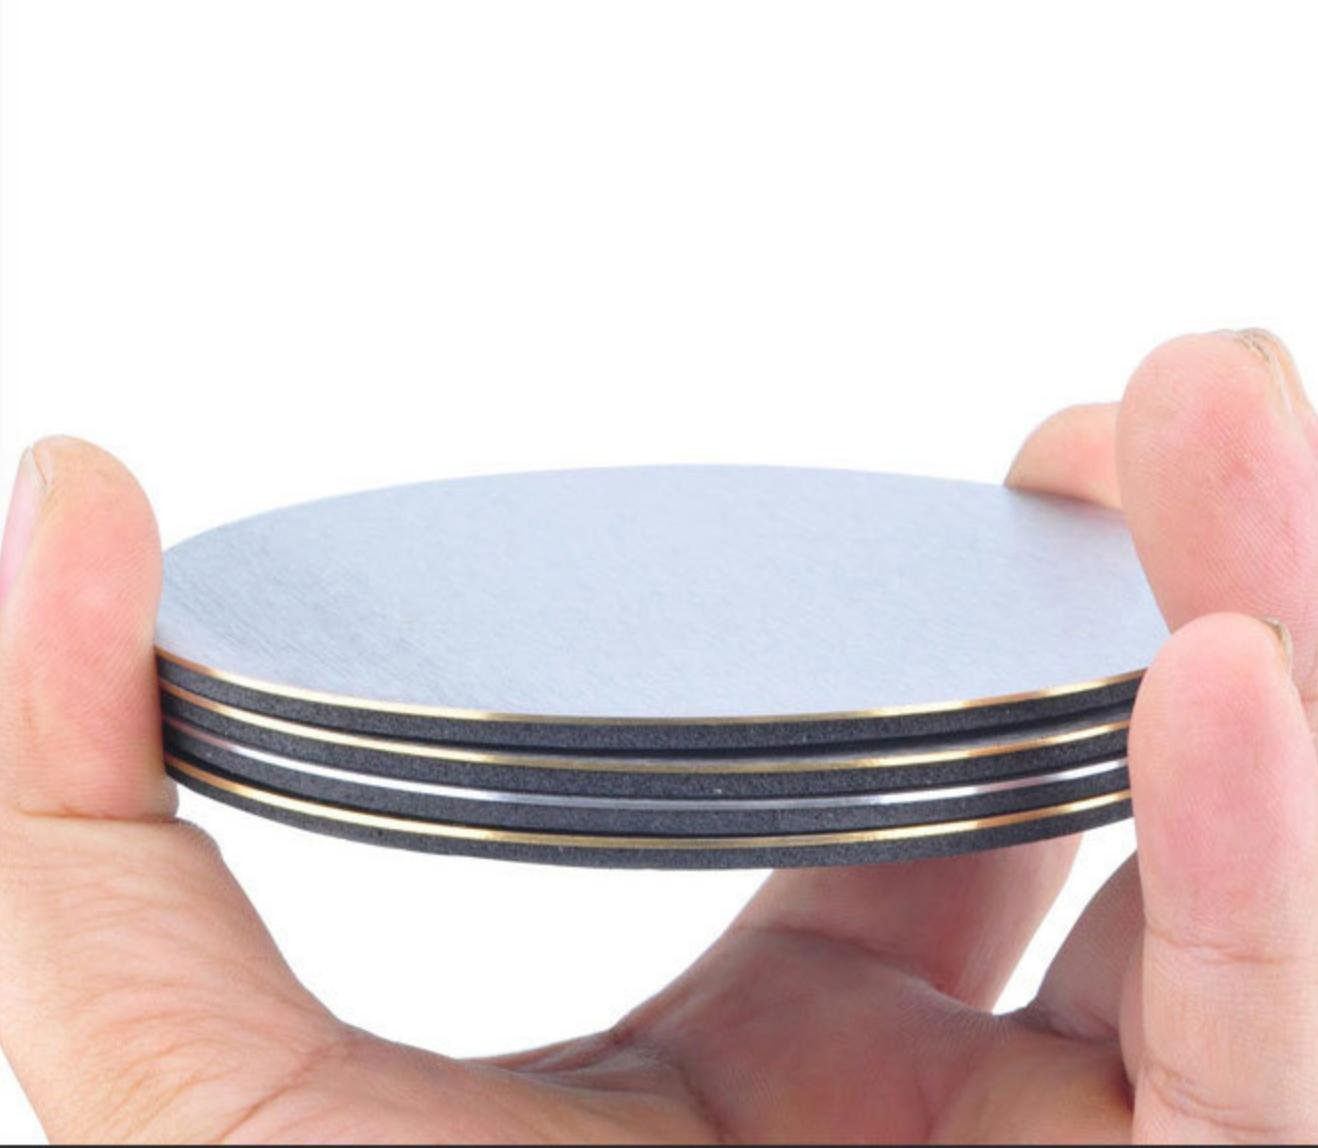 landtom Cup Coasters with holder, Prevent Stains and Scratches with Round Table Coasters For Glasses, Bar Drinks, Mugs, Coffee Cups, Tea, Wine, Beverages(set of 4)